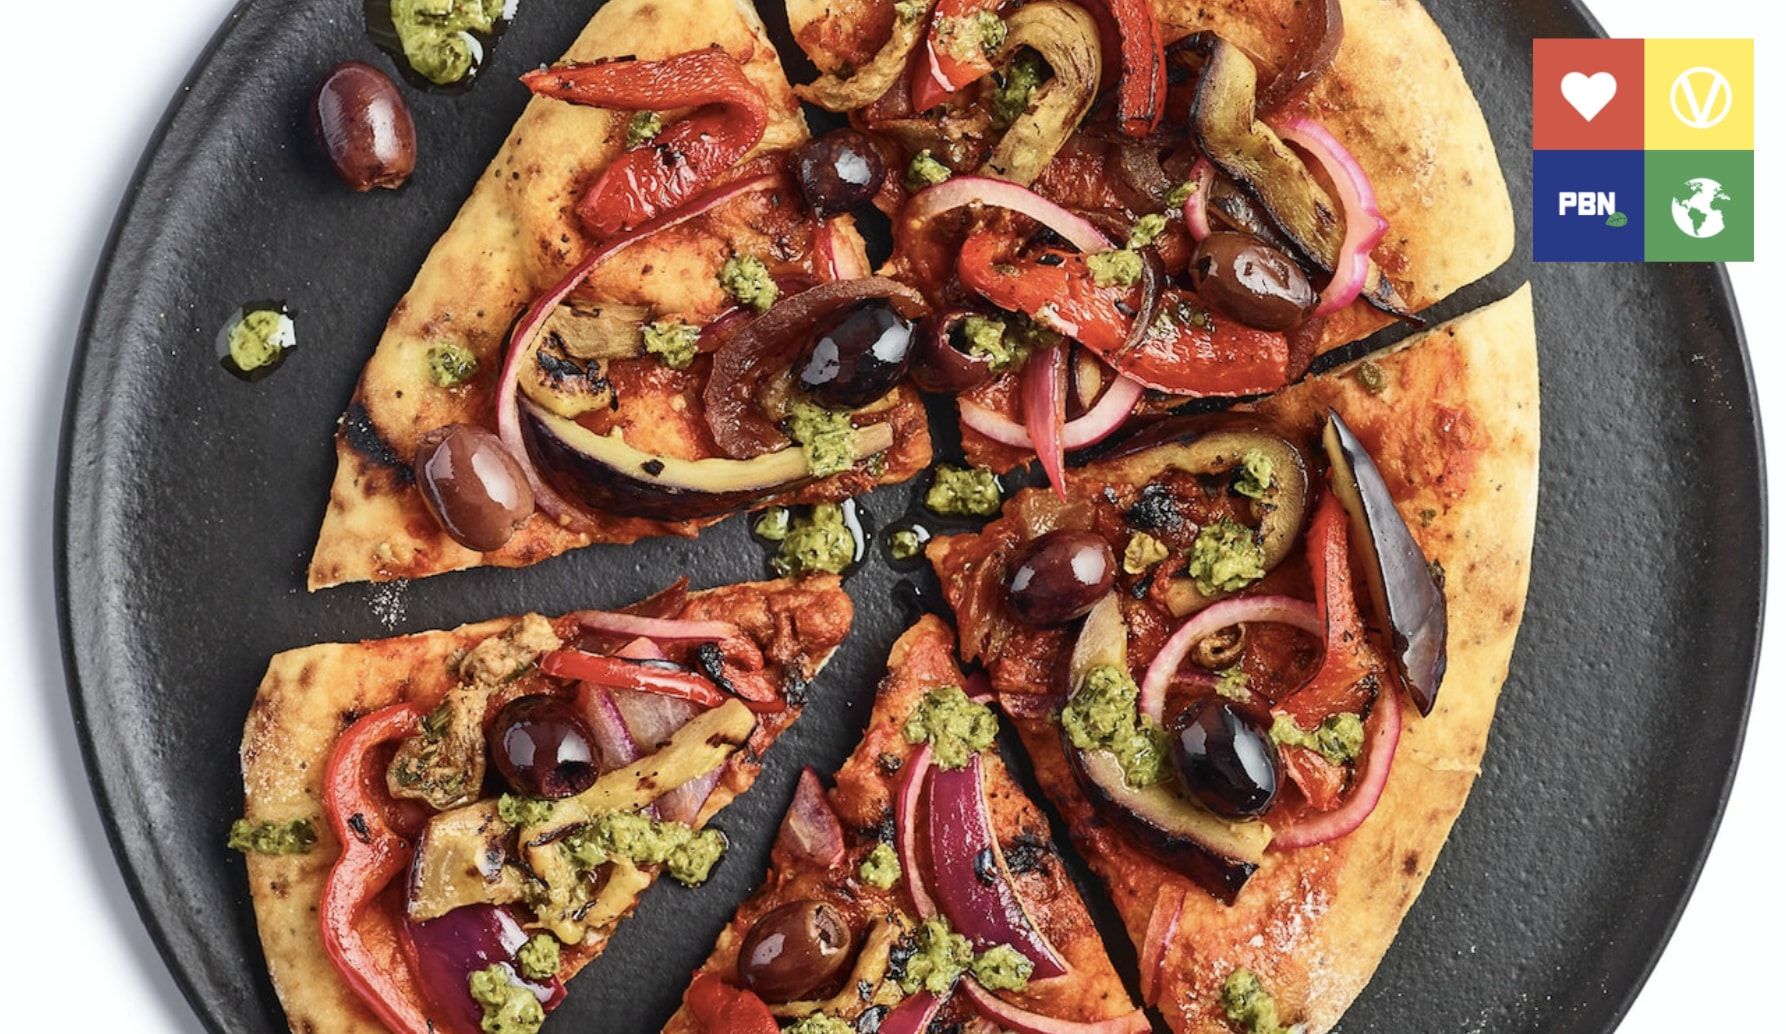 A vegan pizza from Tesco's Wicked Kitchen range